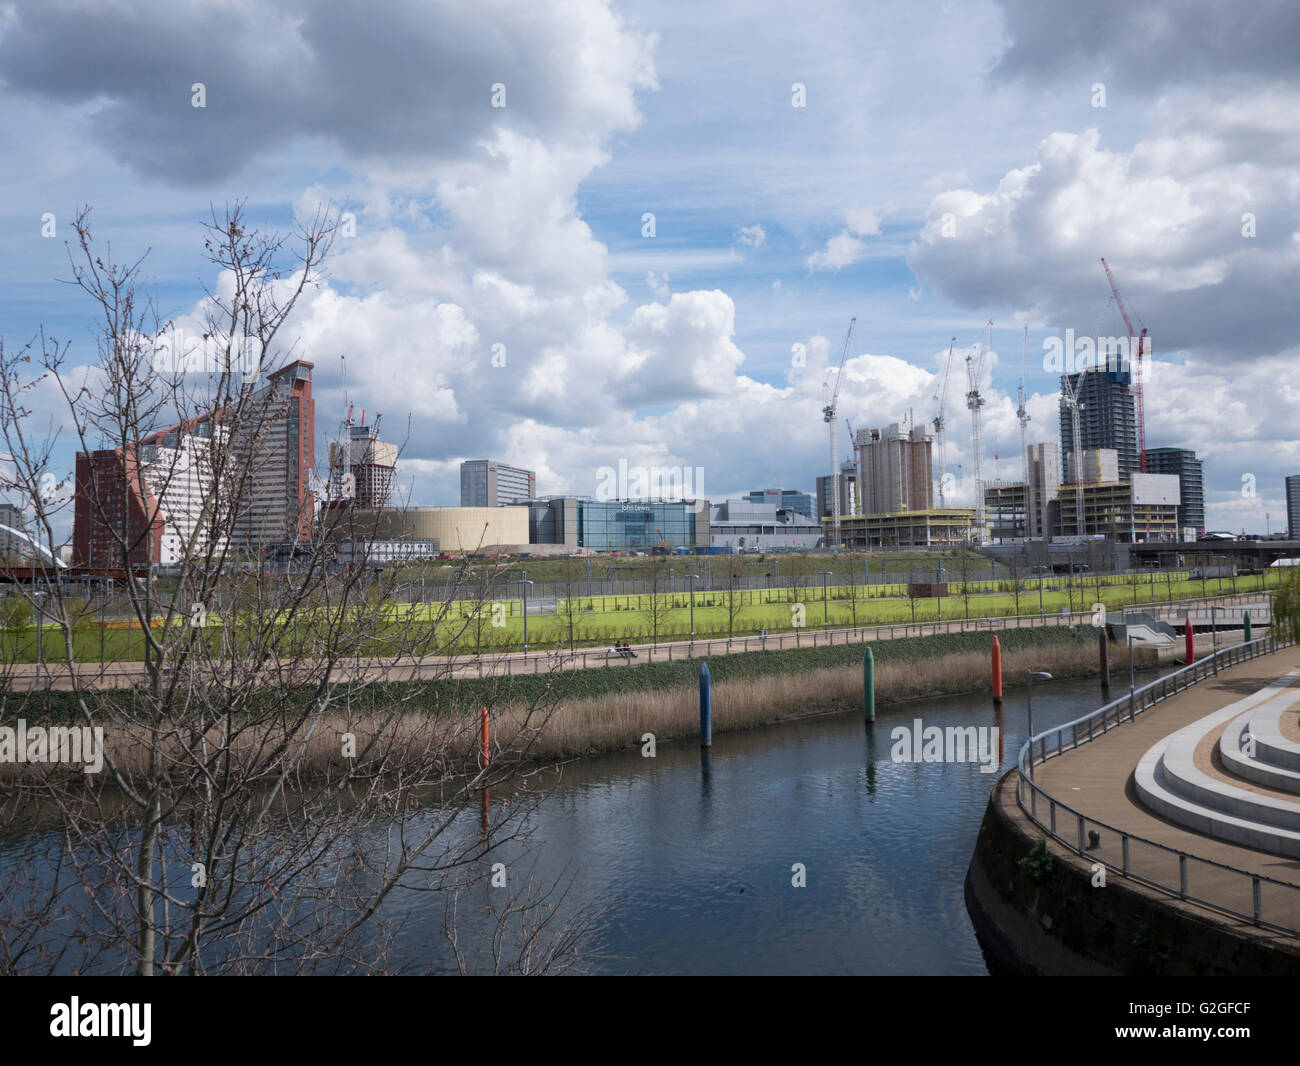 Olympic Park Stratford London, with River Lea - Stock Image